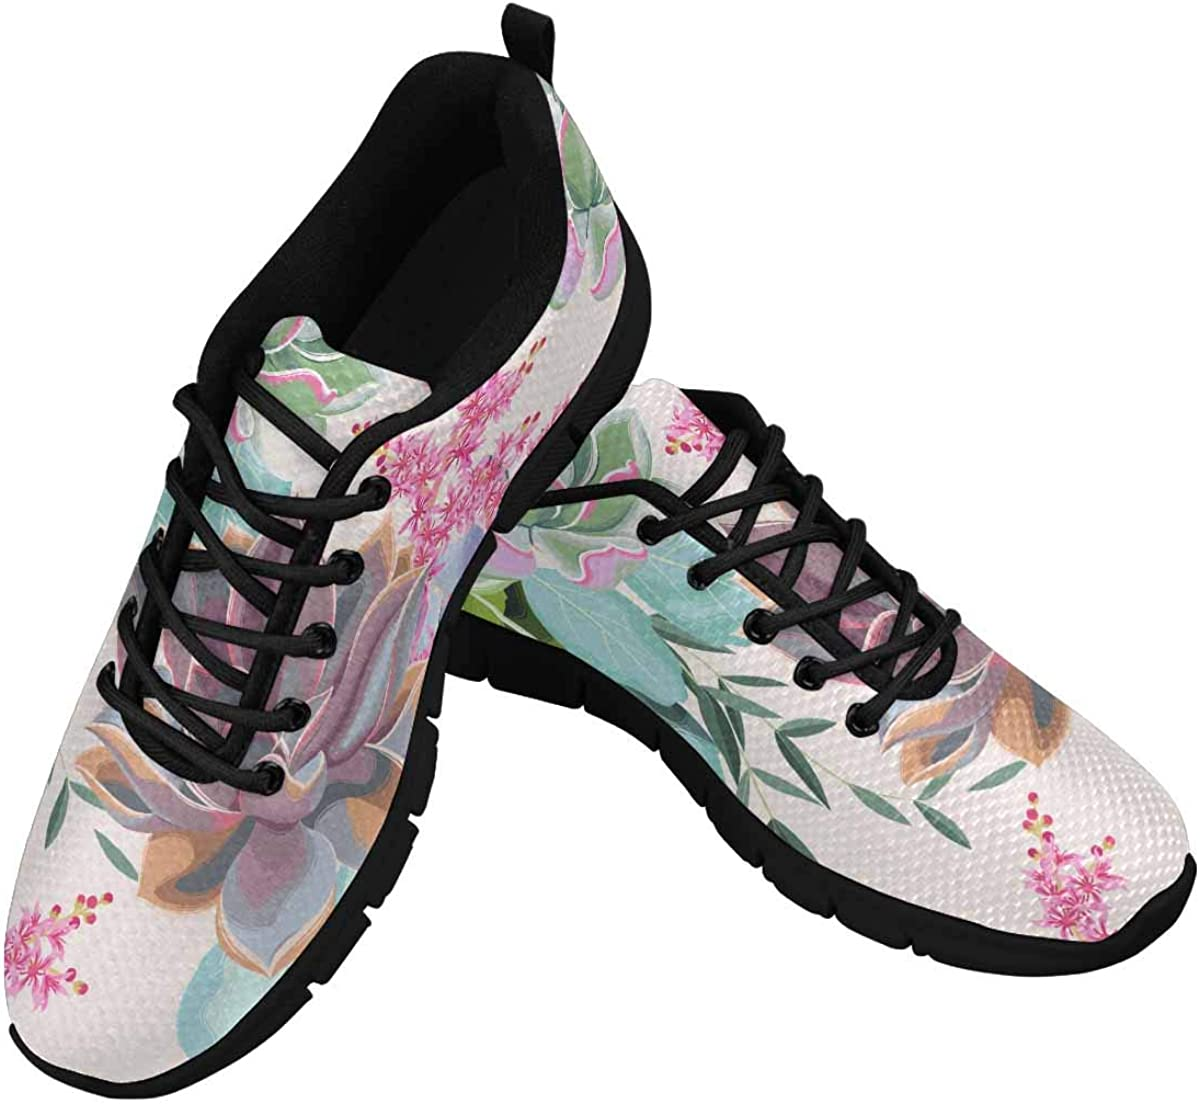 INTERESTPRINT Flowers and Succulents Women's Athletic Walking Shoes Casual Mesh Comfortable Work Sneakers